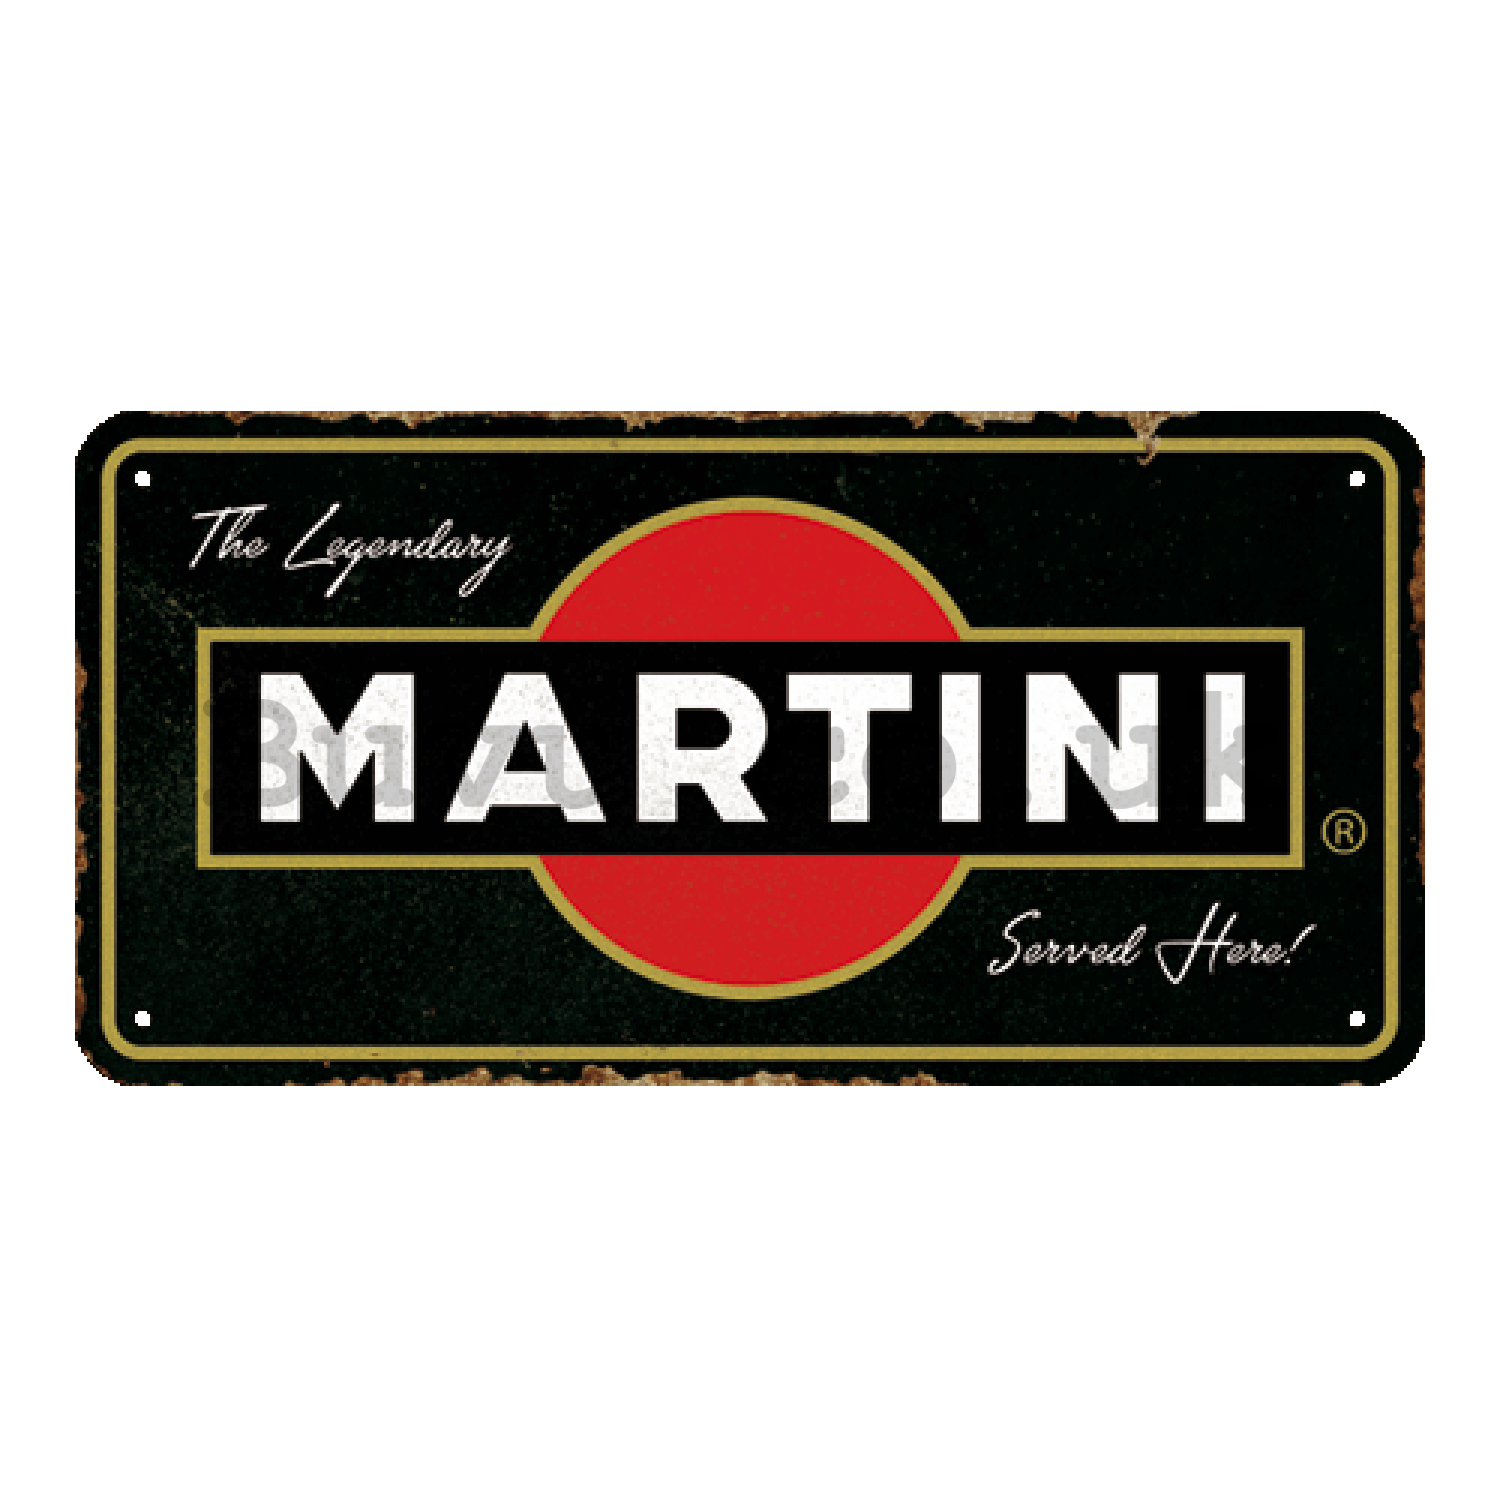 Wall hanging sign: Martini Served Here - 20x10 cm